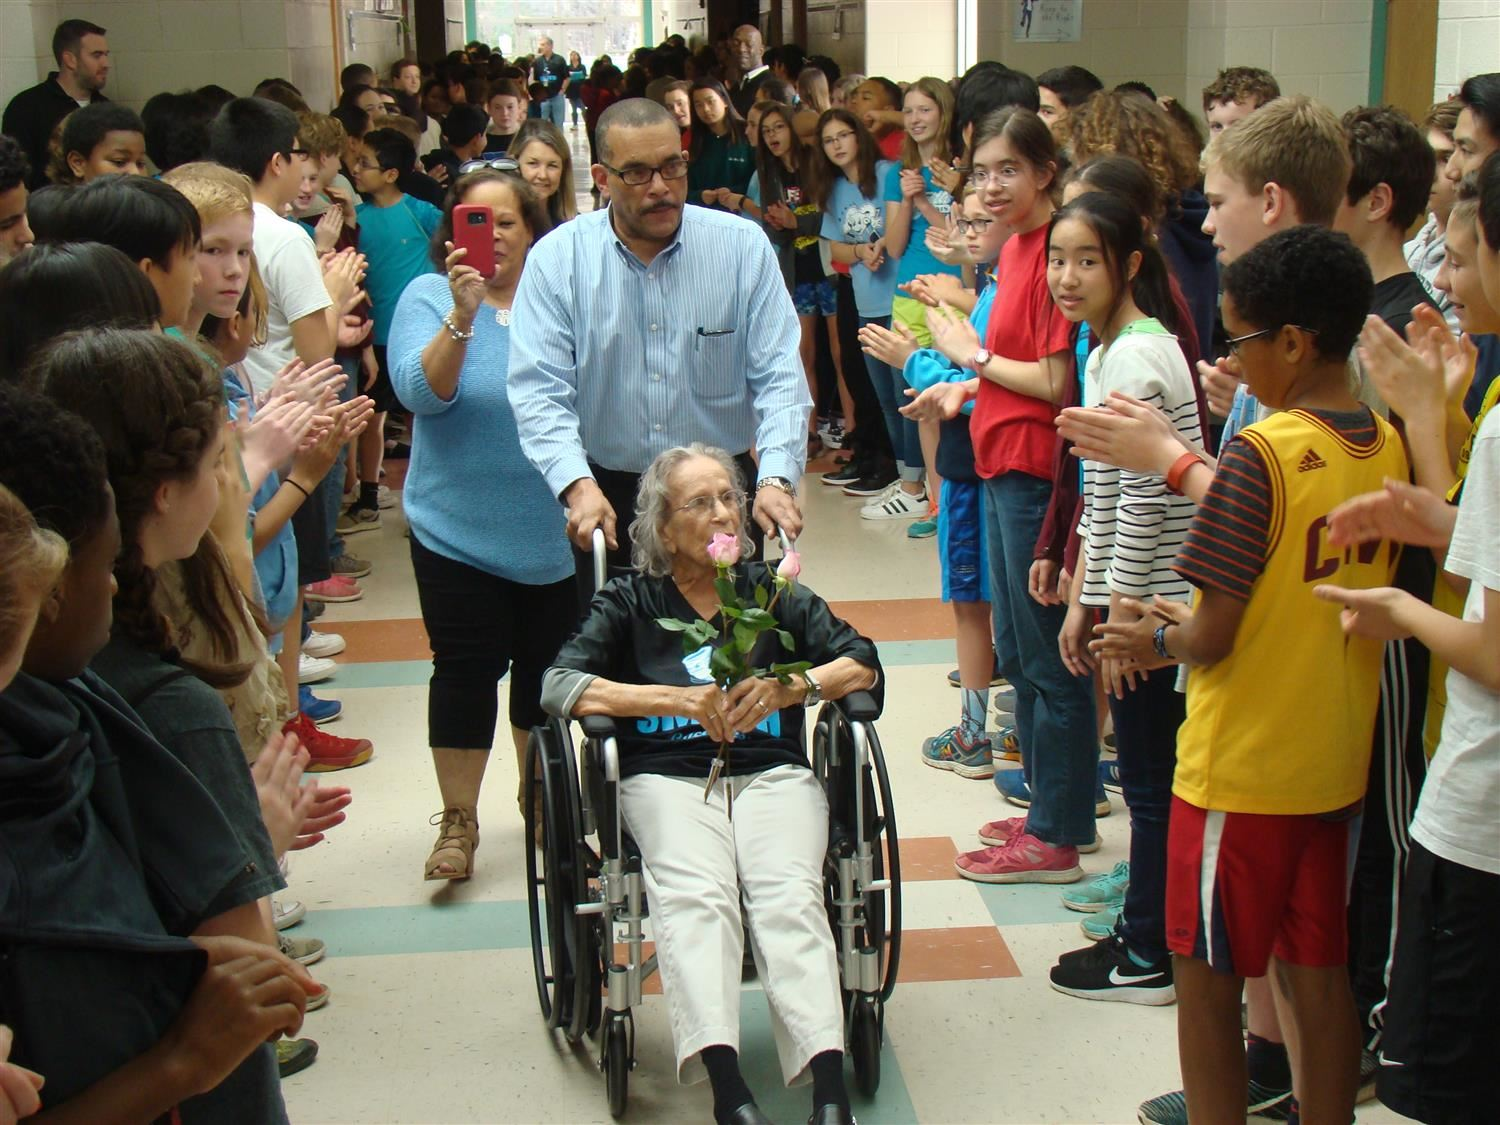 CHCCS Says Goodbye to Legendary Leader and Beacon